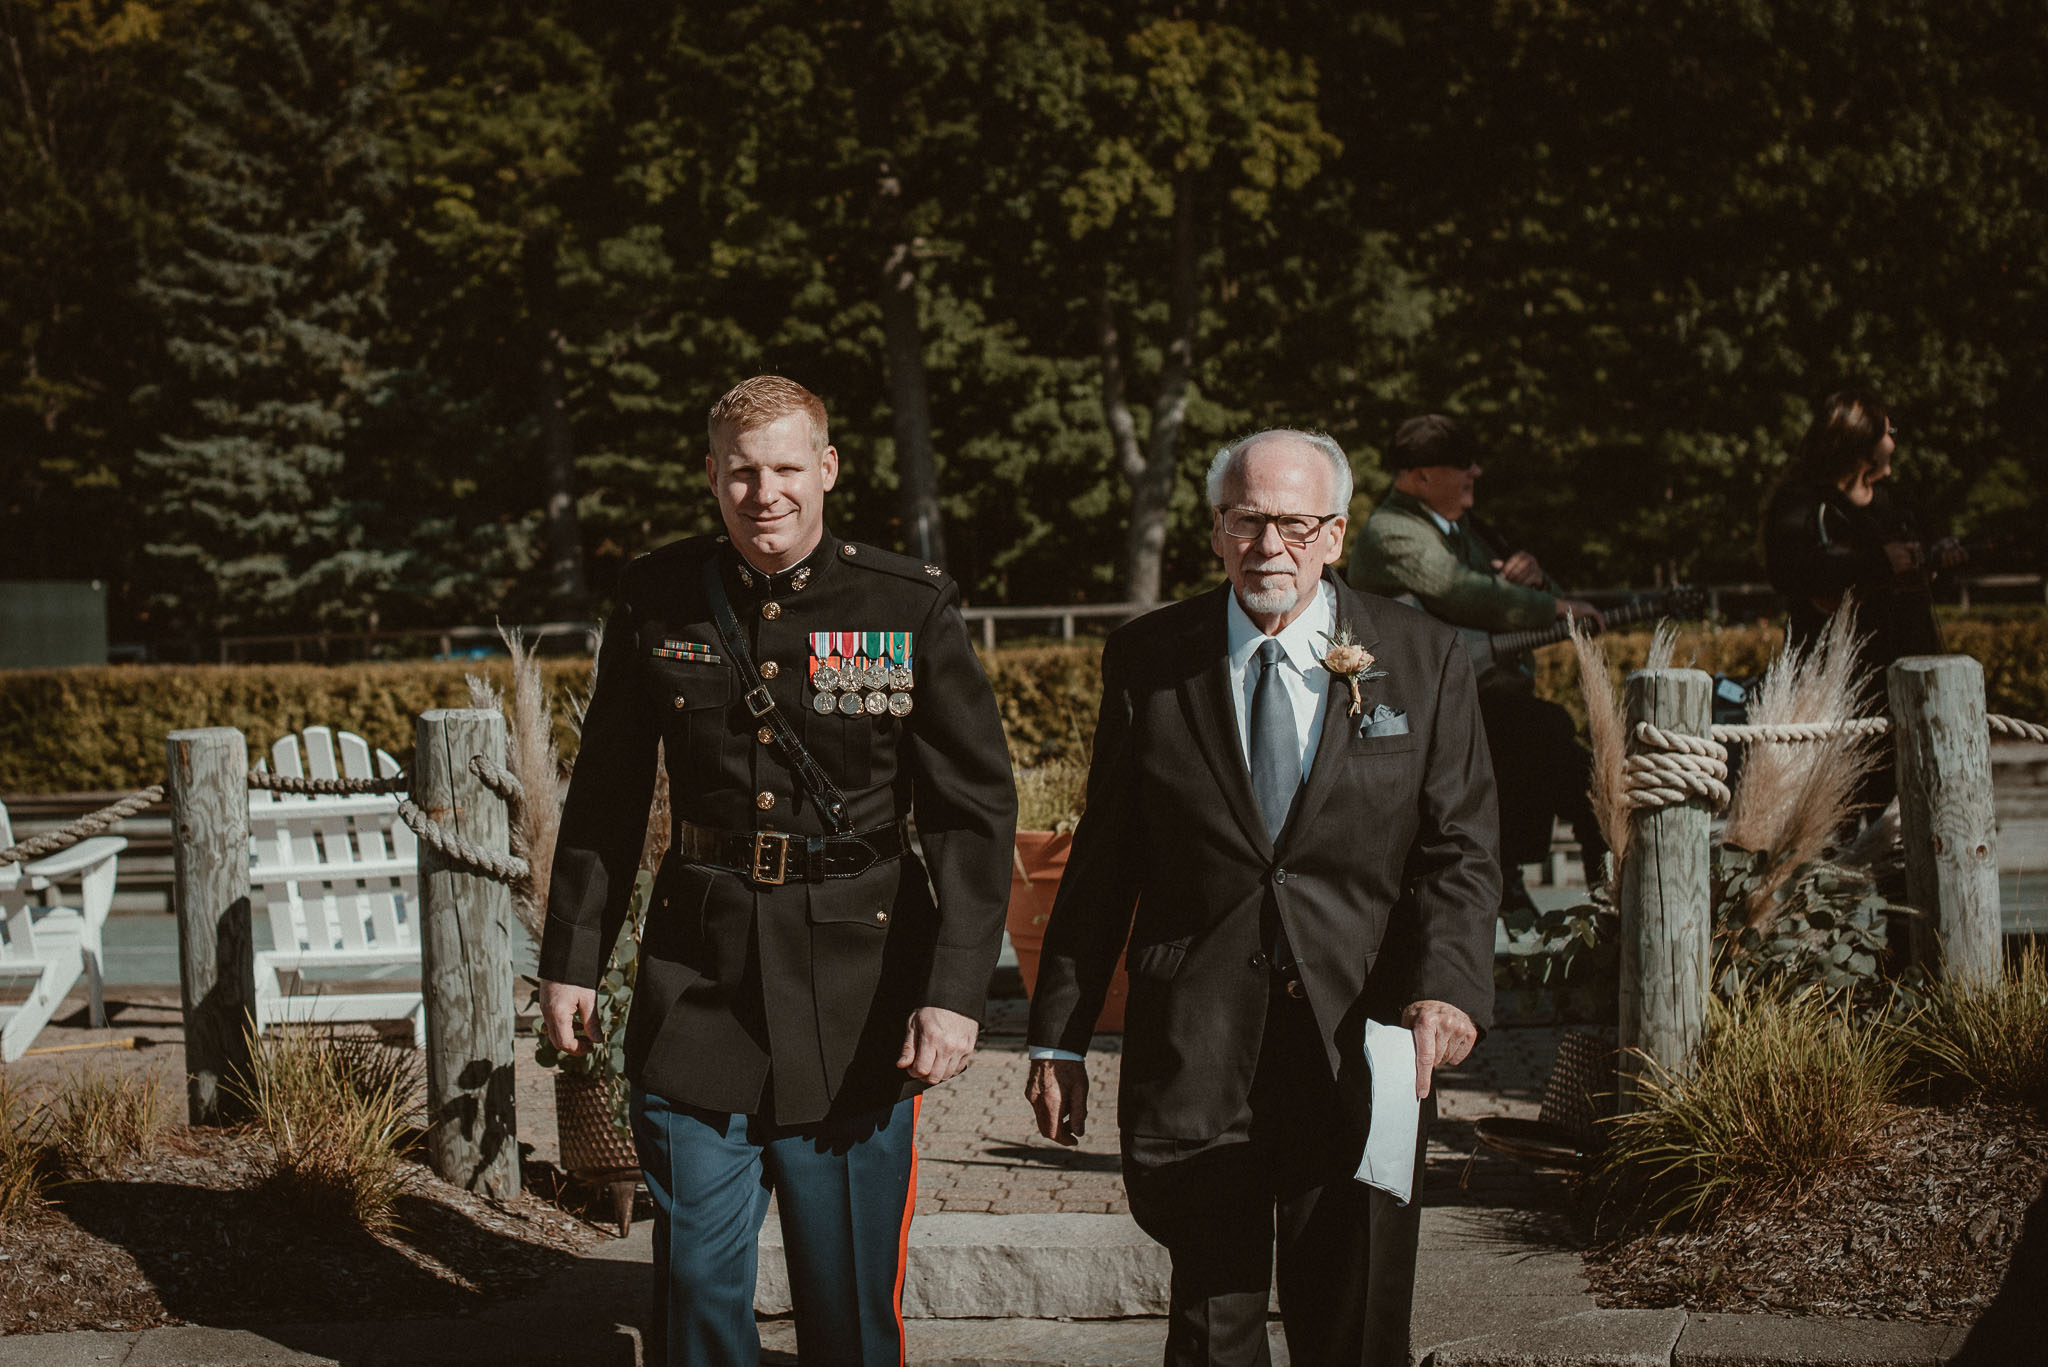 The father of the groom as the officiant walking down the isle with the groom.